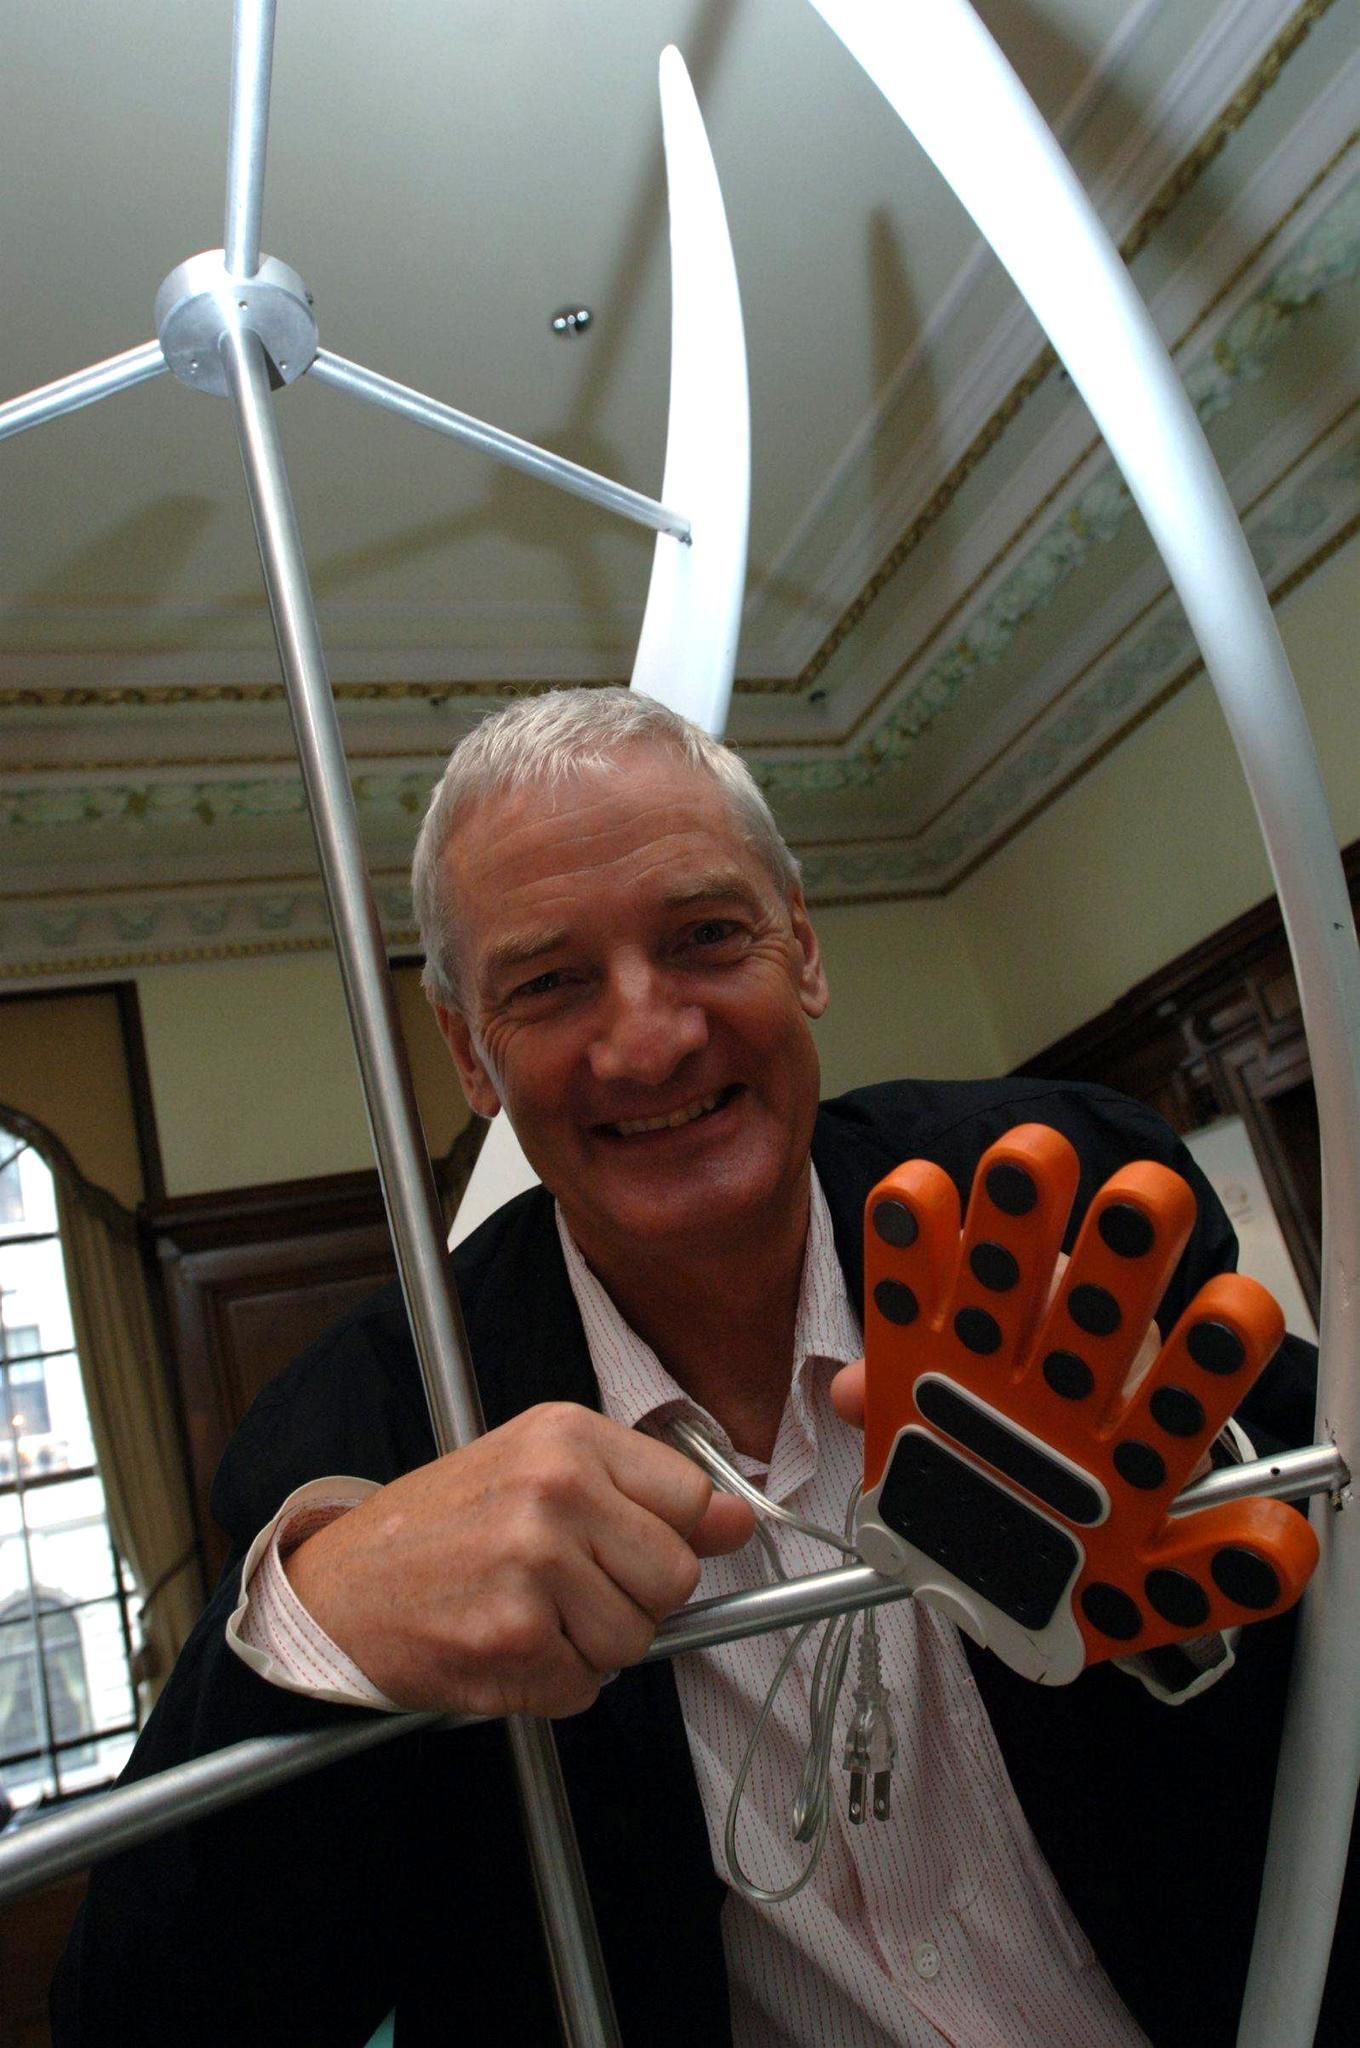 Bagless vacuum cleaner inventor James Dyson in central London, where he unveiled plans for a new college aimed at encouraging young people to become engineers.